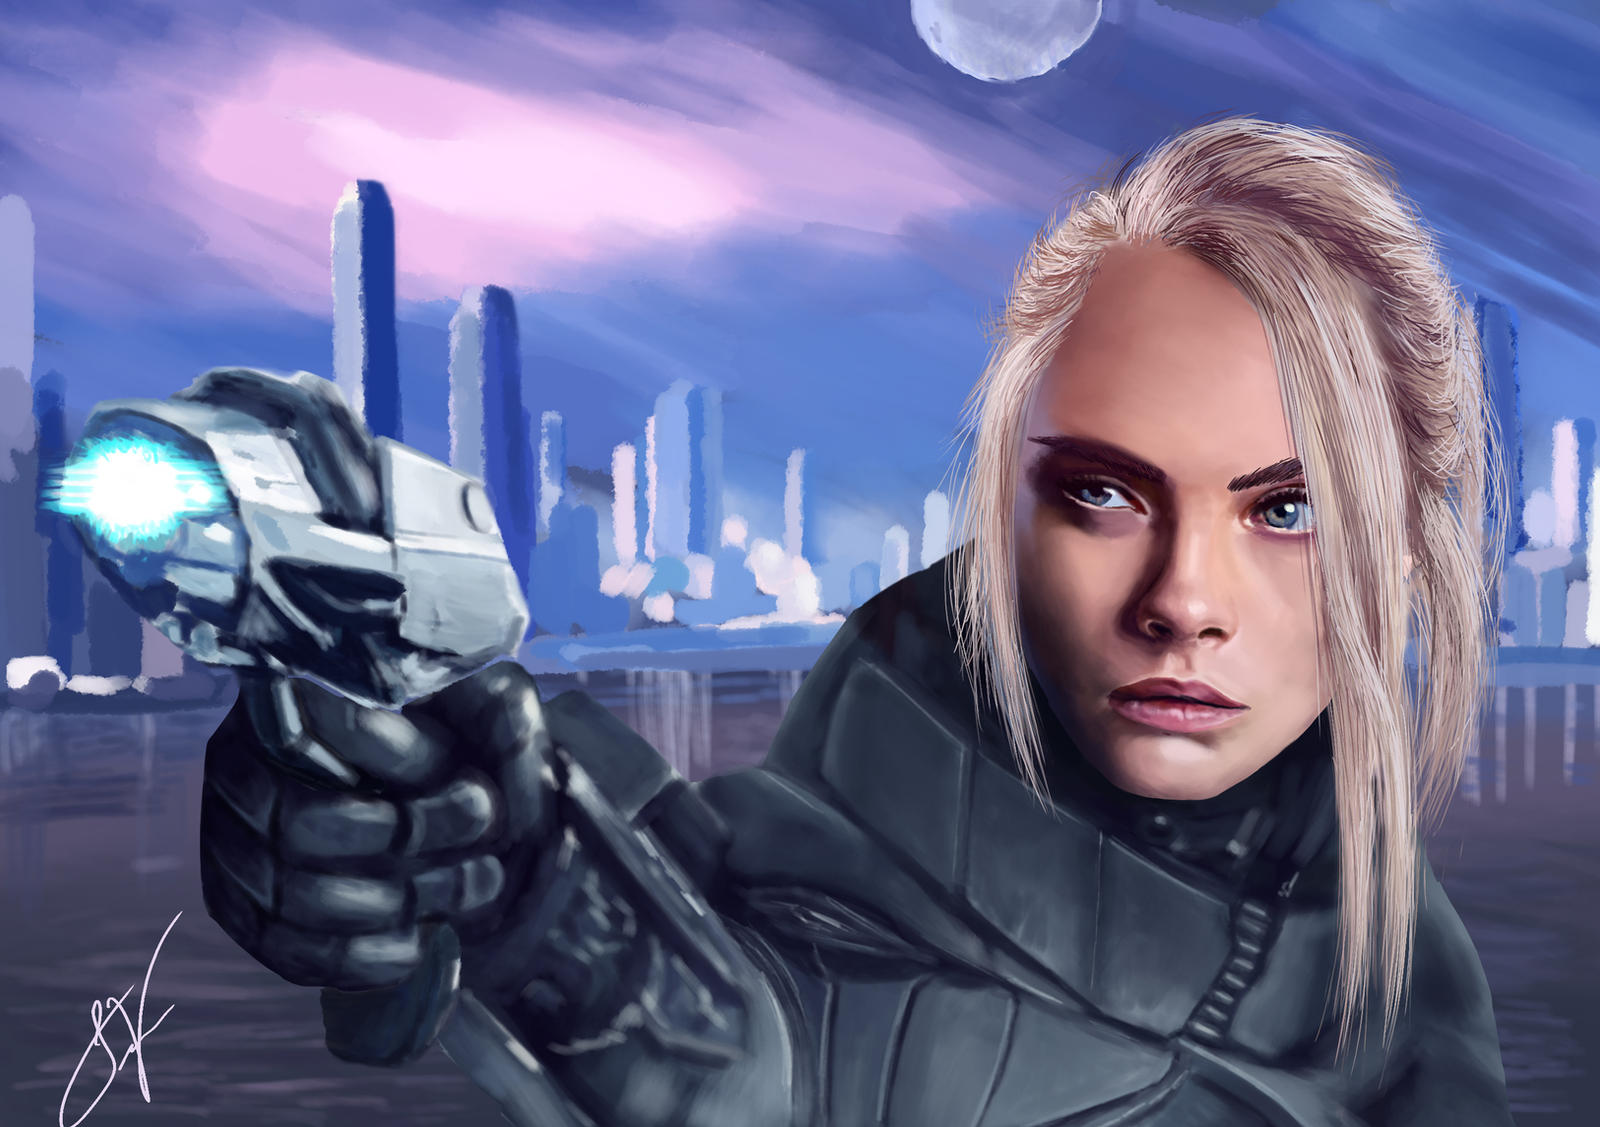 Cara Delevigne as Laureline (Valerian and etc...)